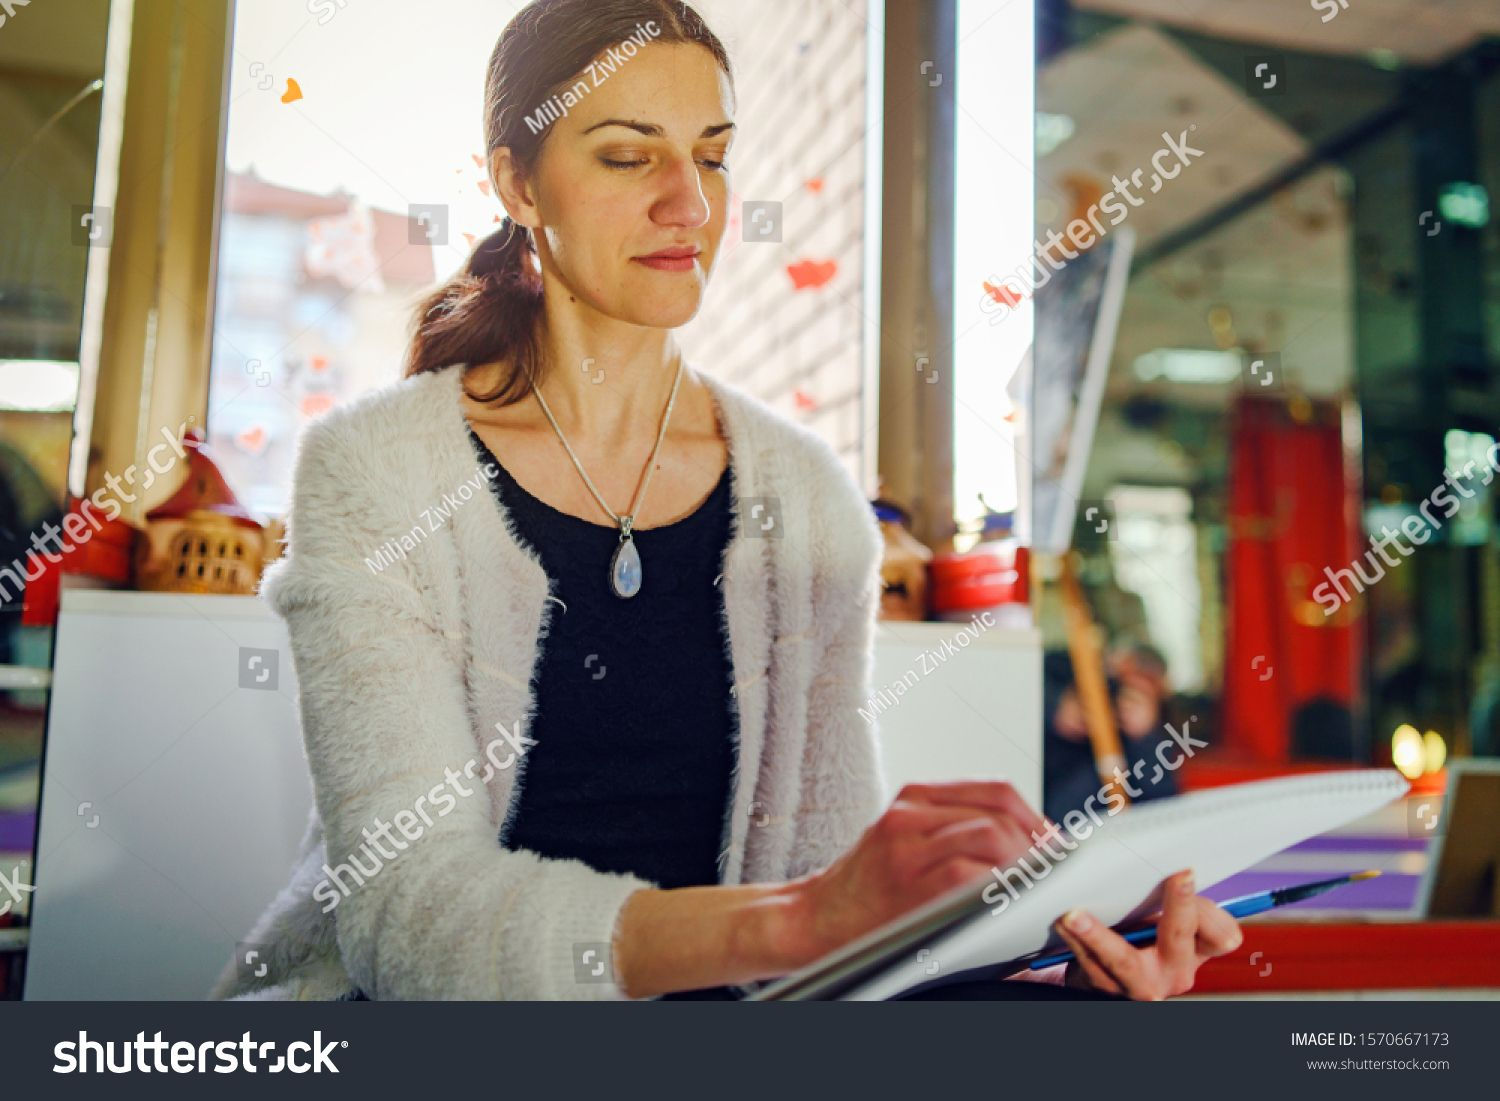 Portrait of young woman sitting and drawing or painting making art by the window at home or studio #Ad , #AD, #sitting#drawing#woman#Portrait